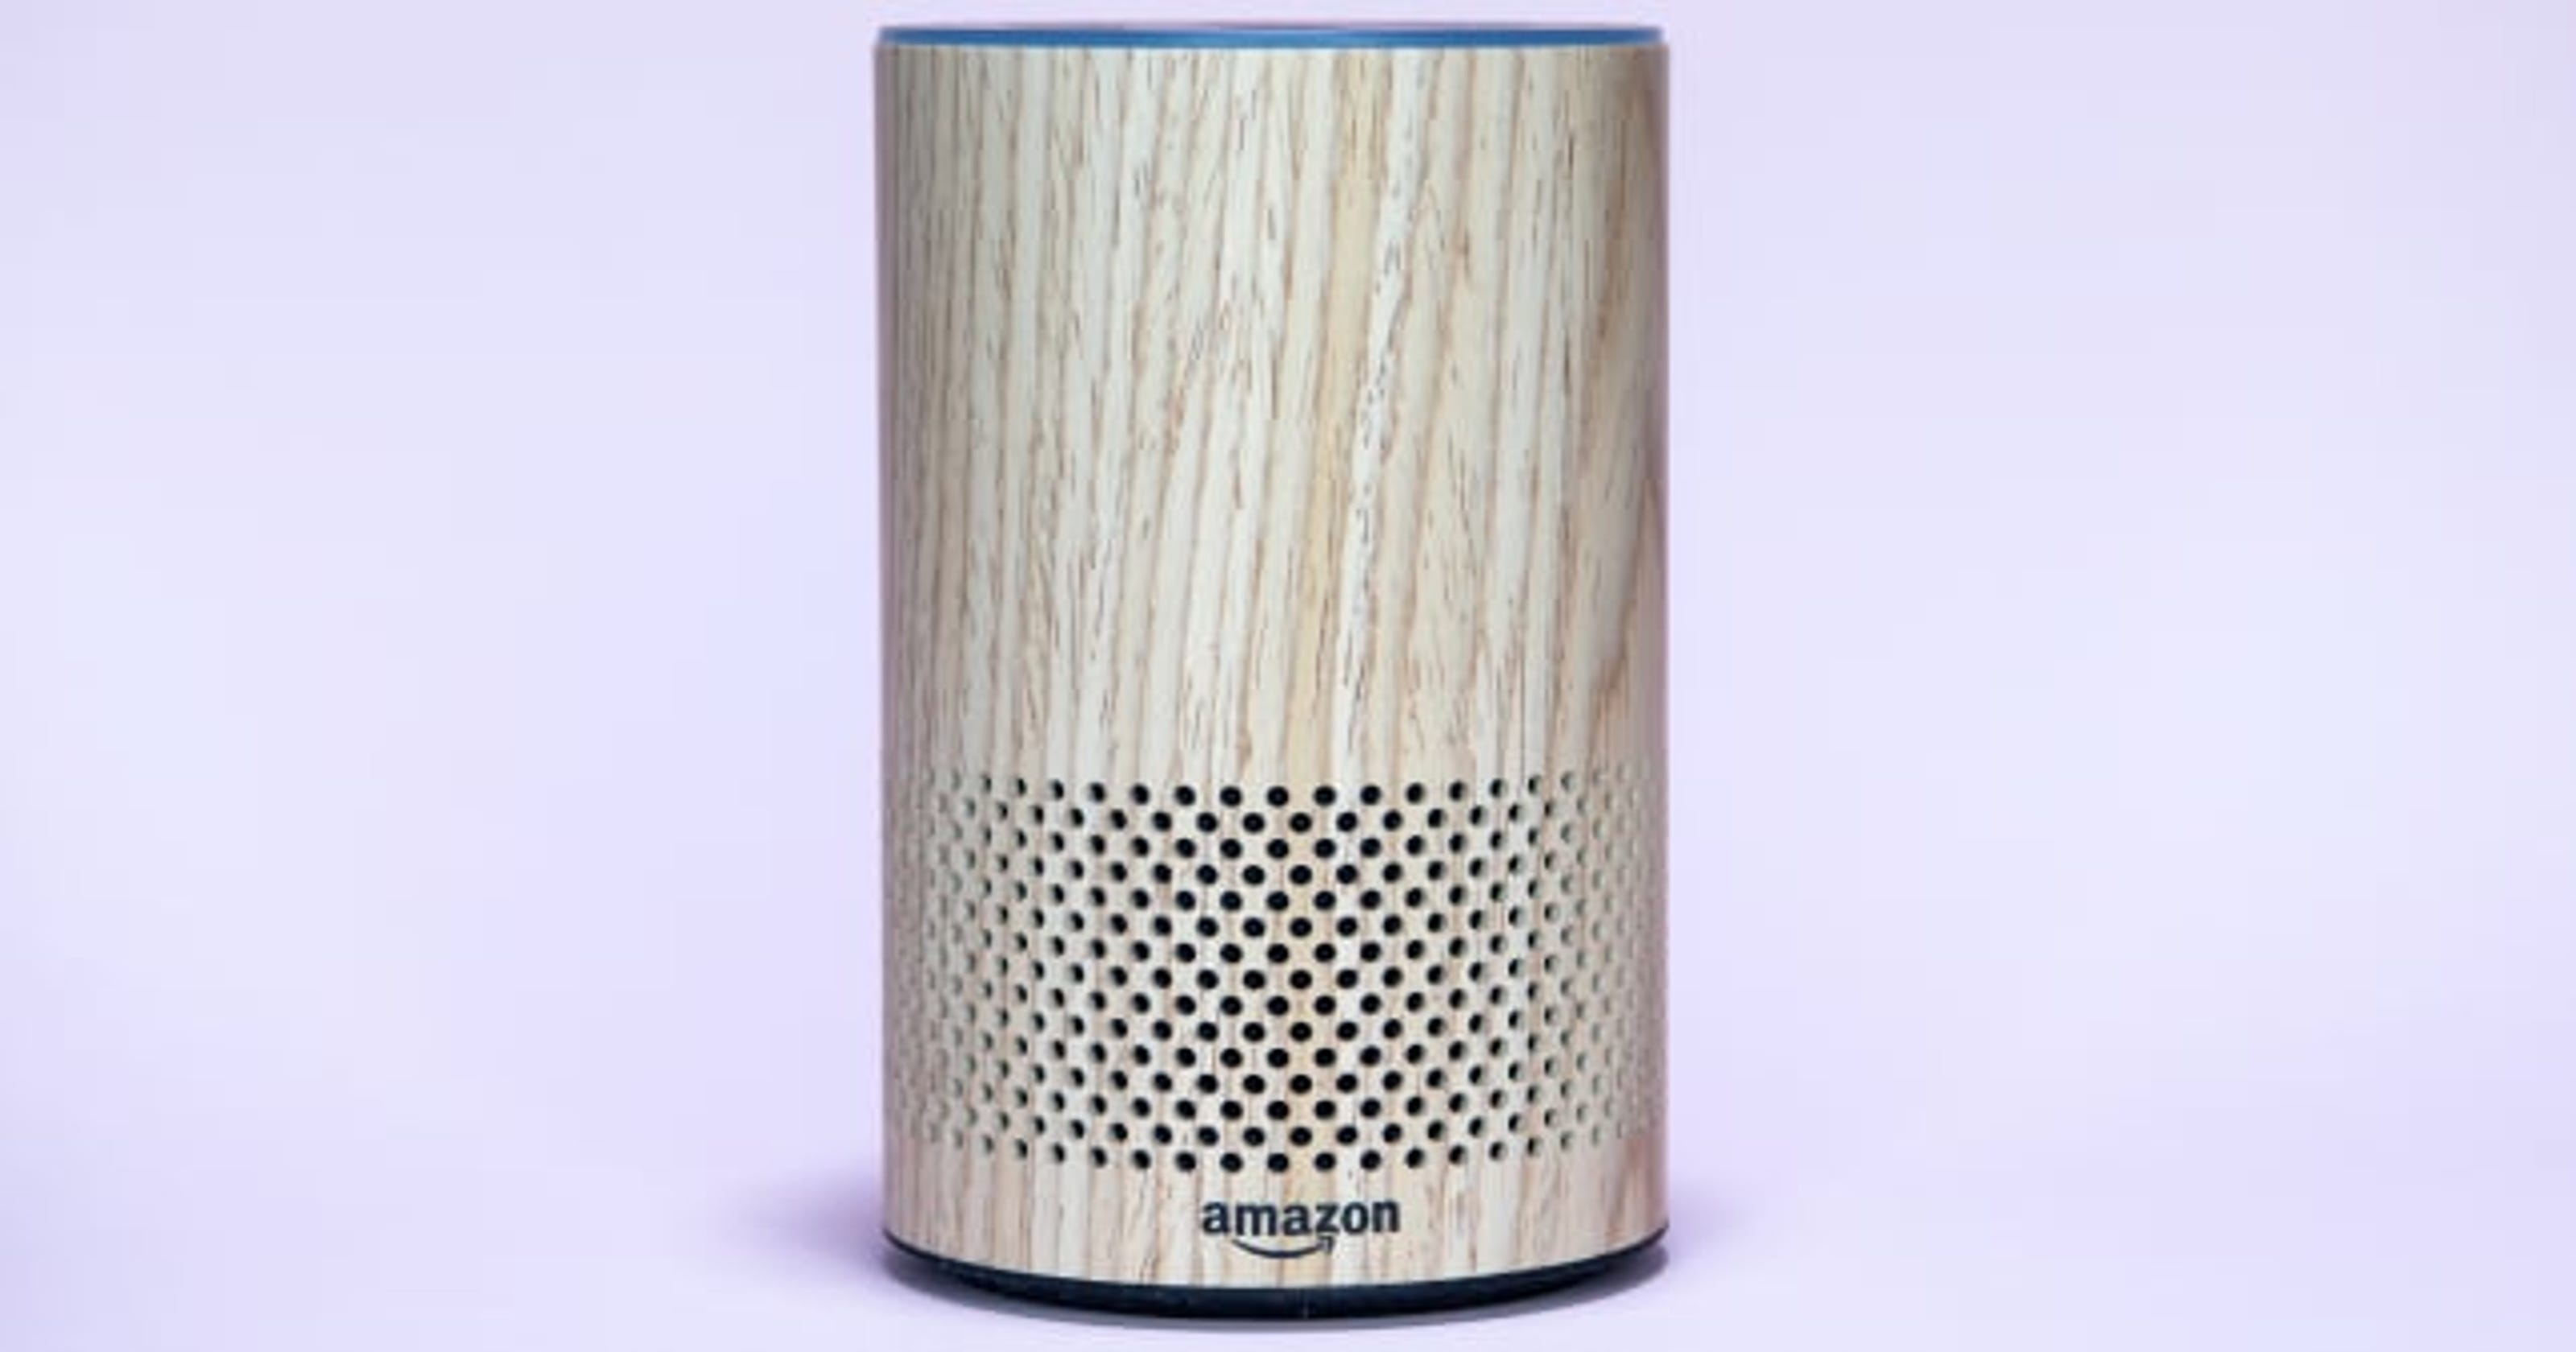 Hey Siri, Google and Alexa — enough with the snooping